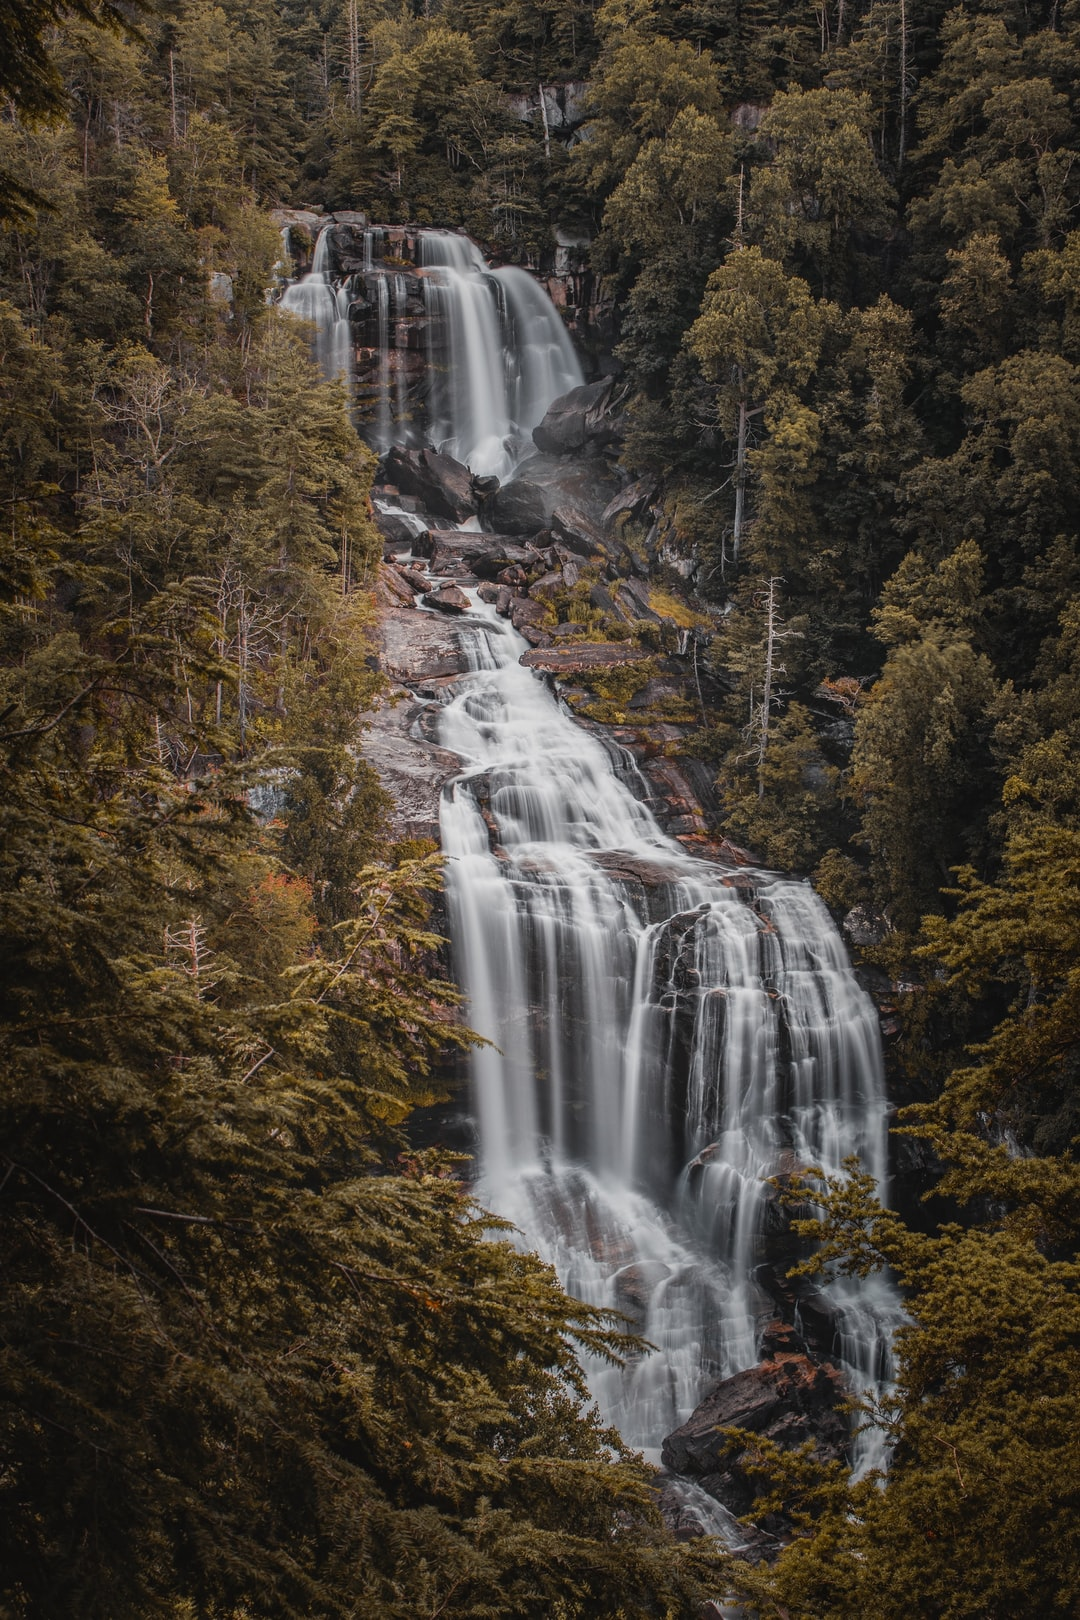 Long exposure of Whitewater falls in Cashiers, NC.